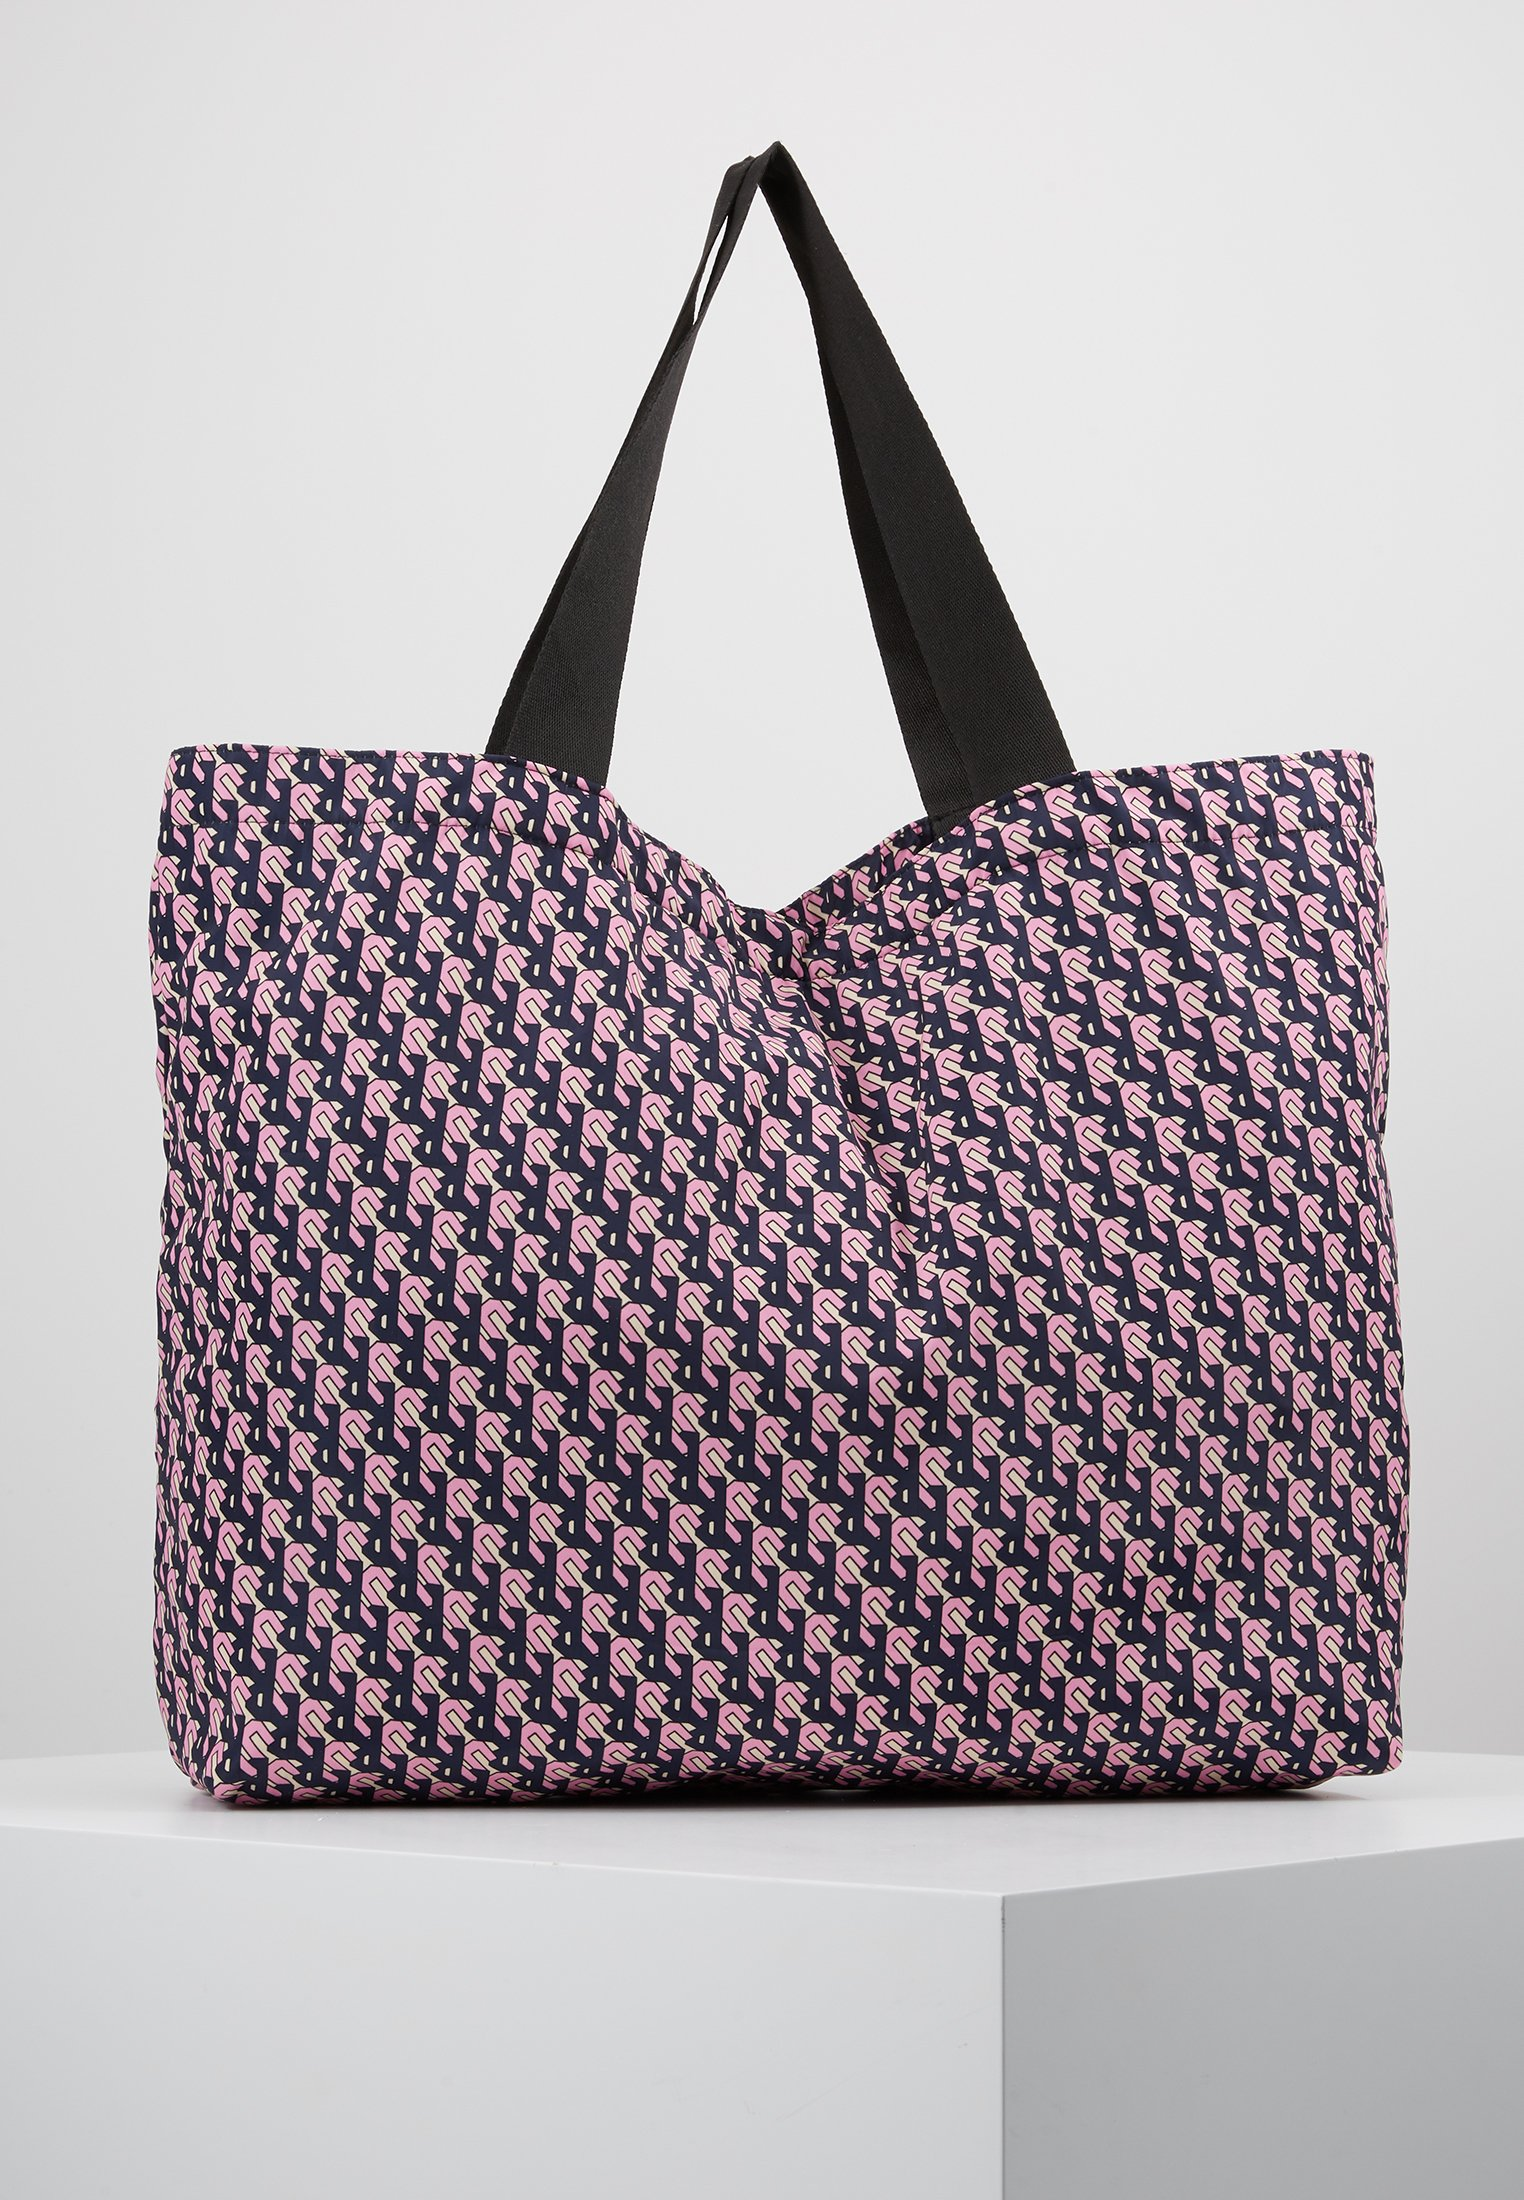 Becks?ndergaard Besra Foldable Bag - Shopping Pink VWAFPk5